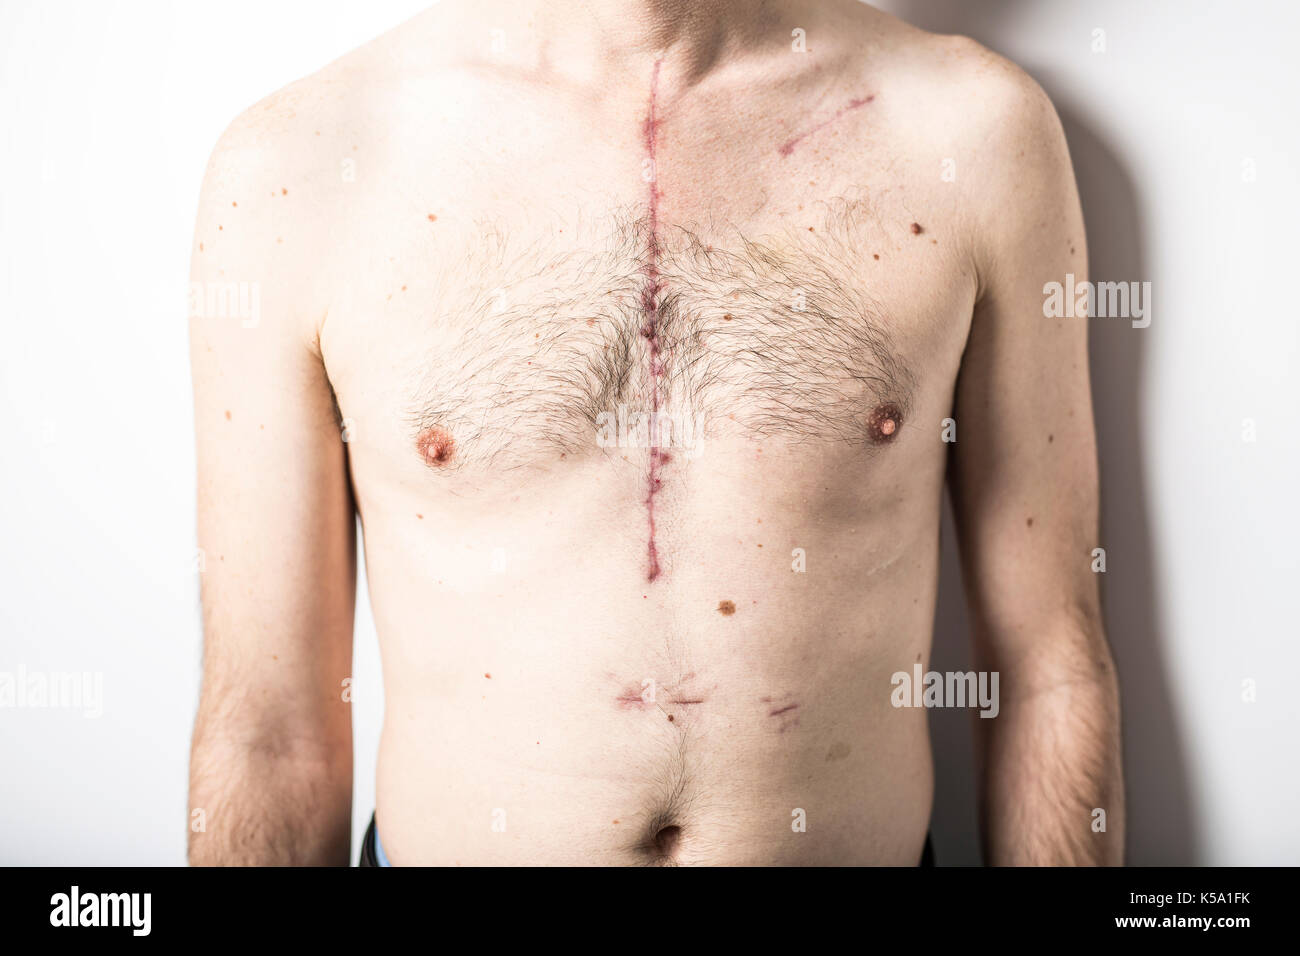 Some Scar from open heart surgery in studio - Stock Image